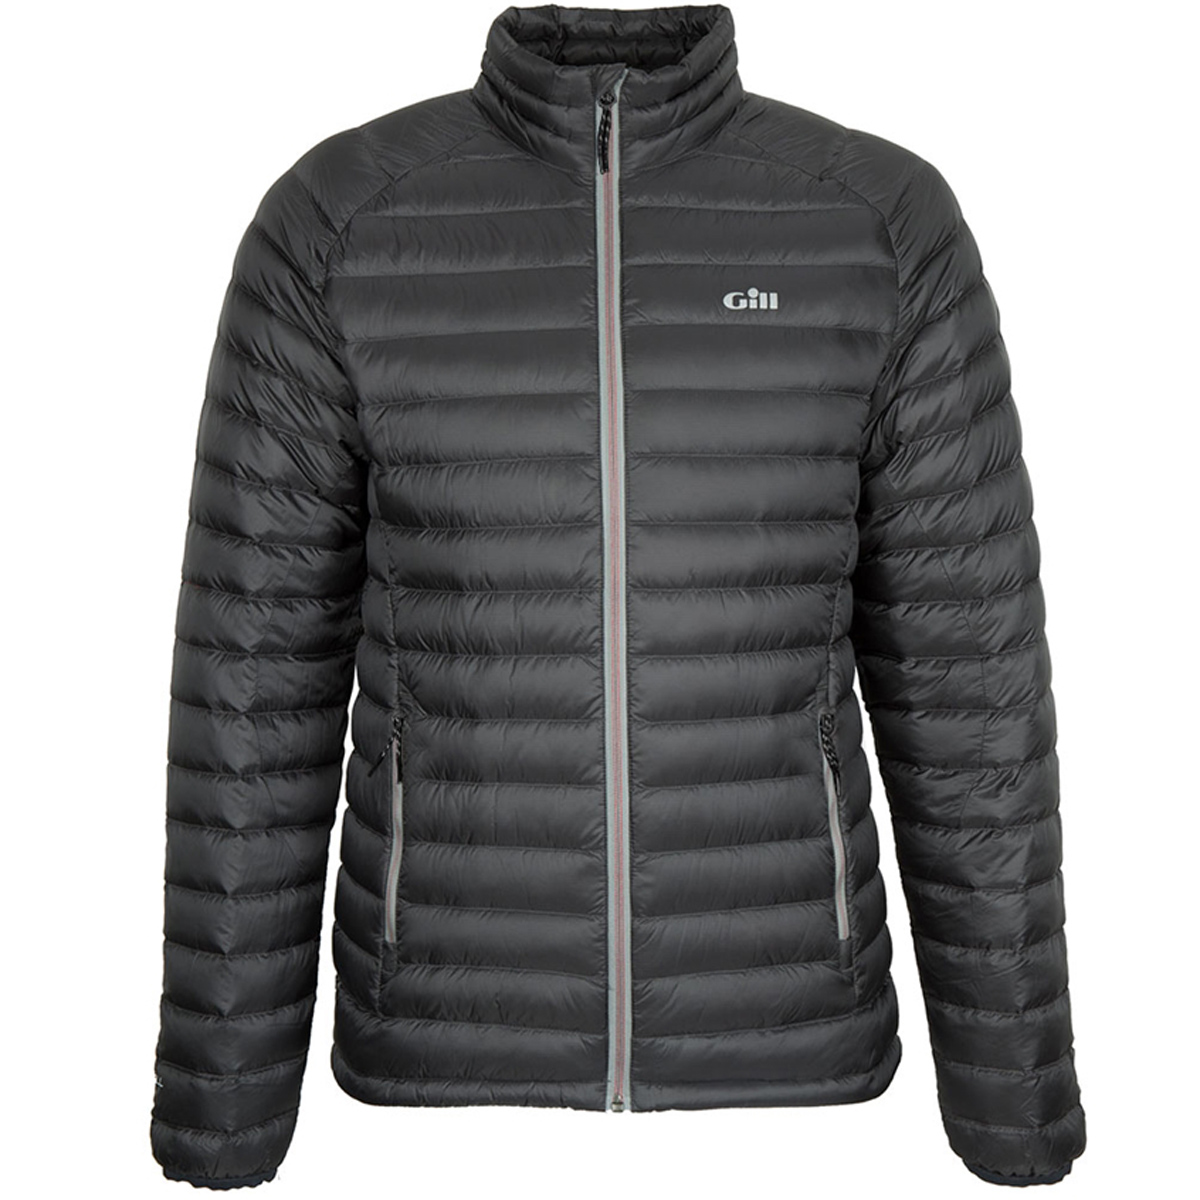 GILL MEN'S HYDROPHOBE DOWN JACKET (1062)